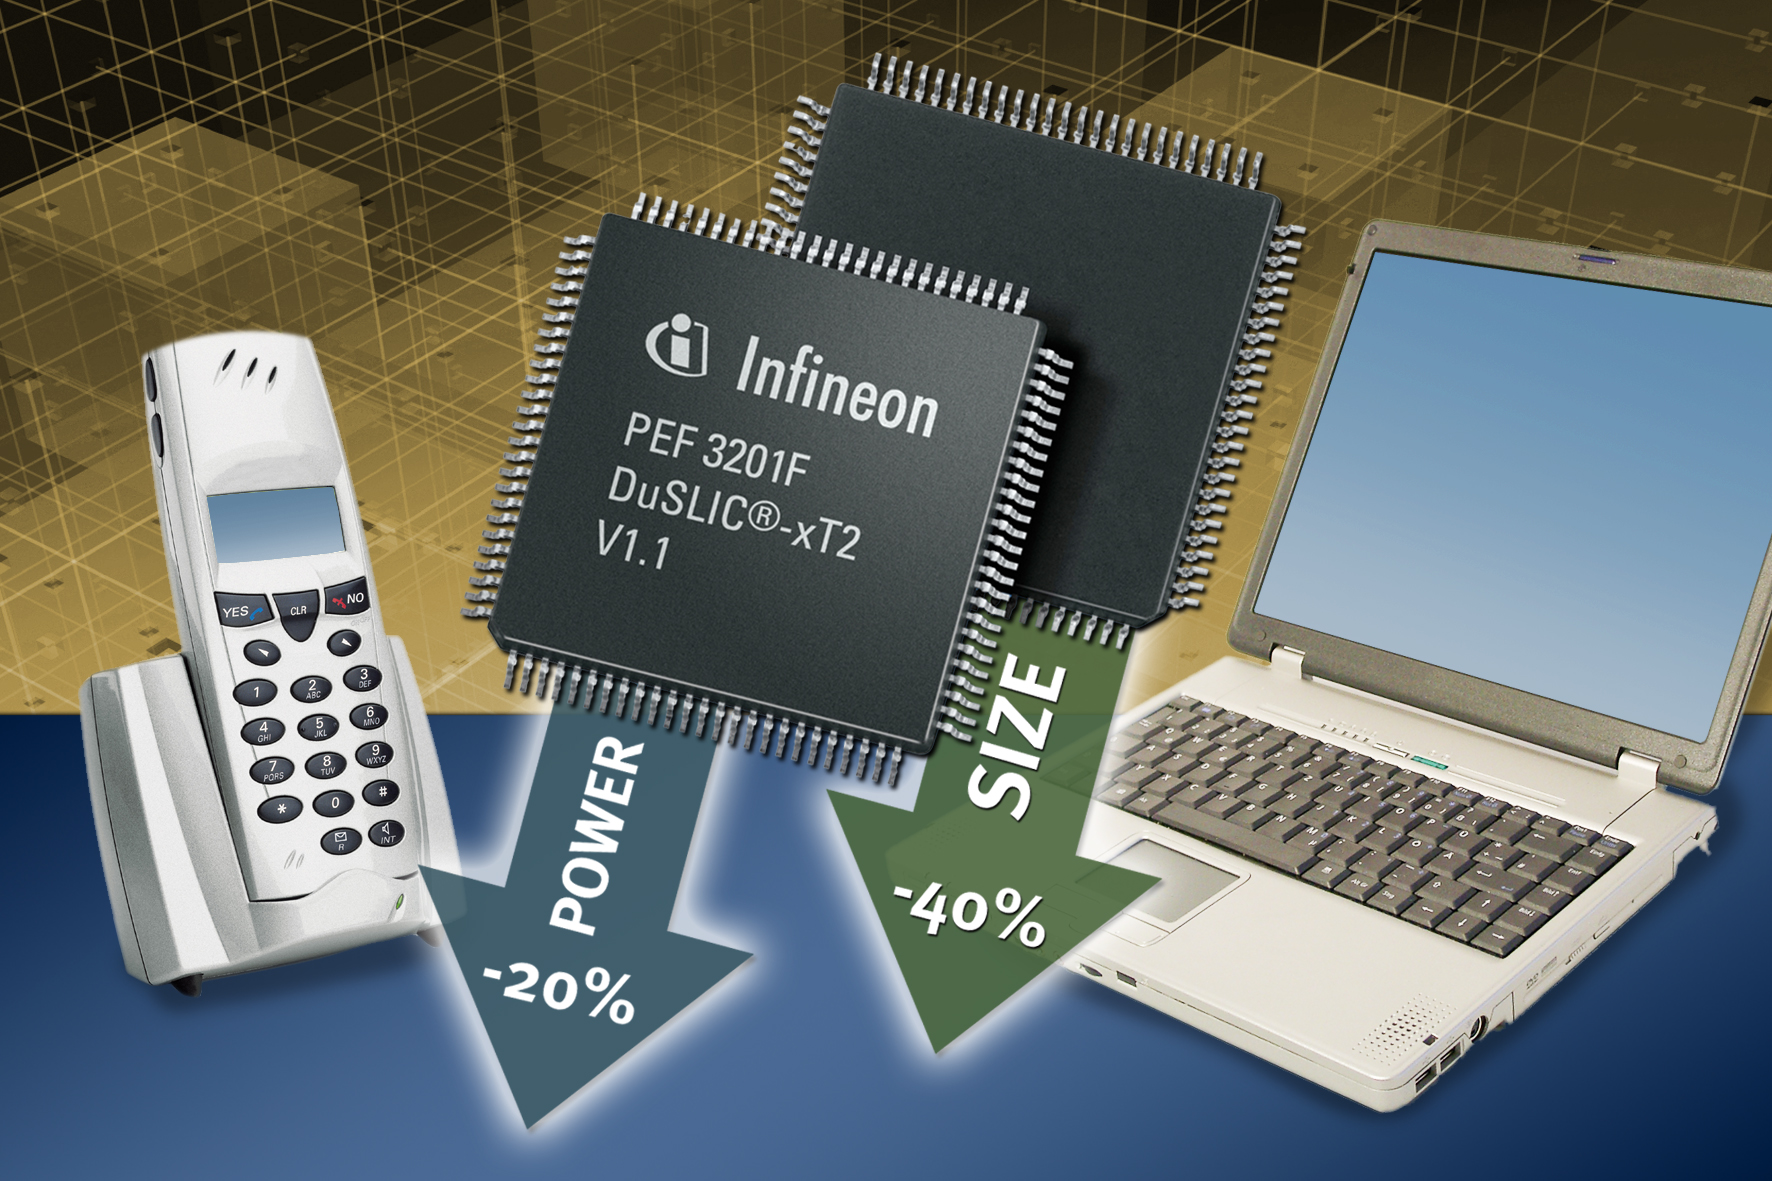 Infineon Introduces Low Power Codec Slic Single Chip For Voice Ic Chips Laptop Programmable Integrated Circuit Duslic Xt2